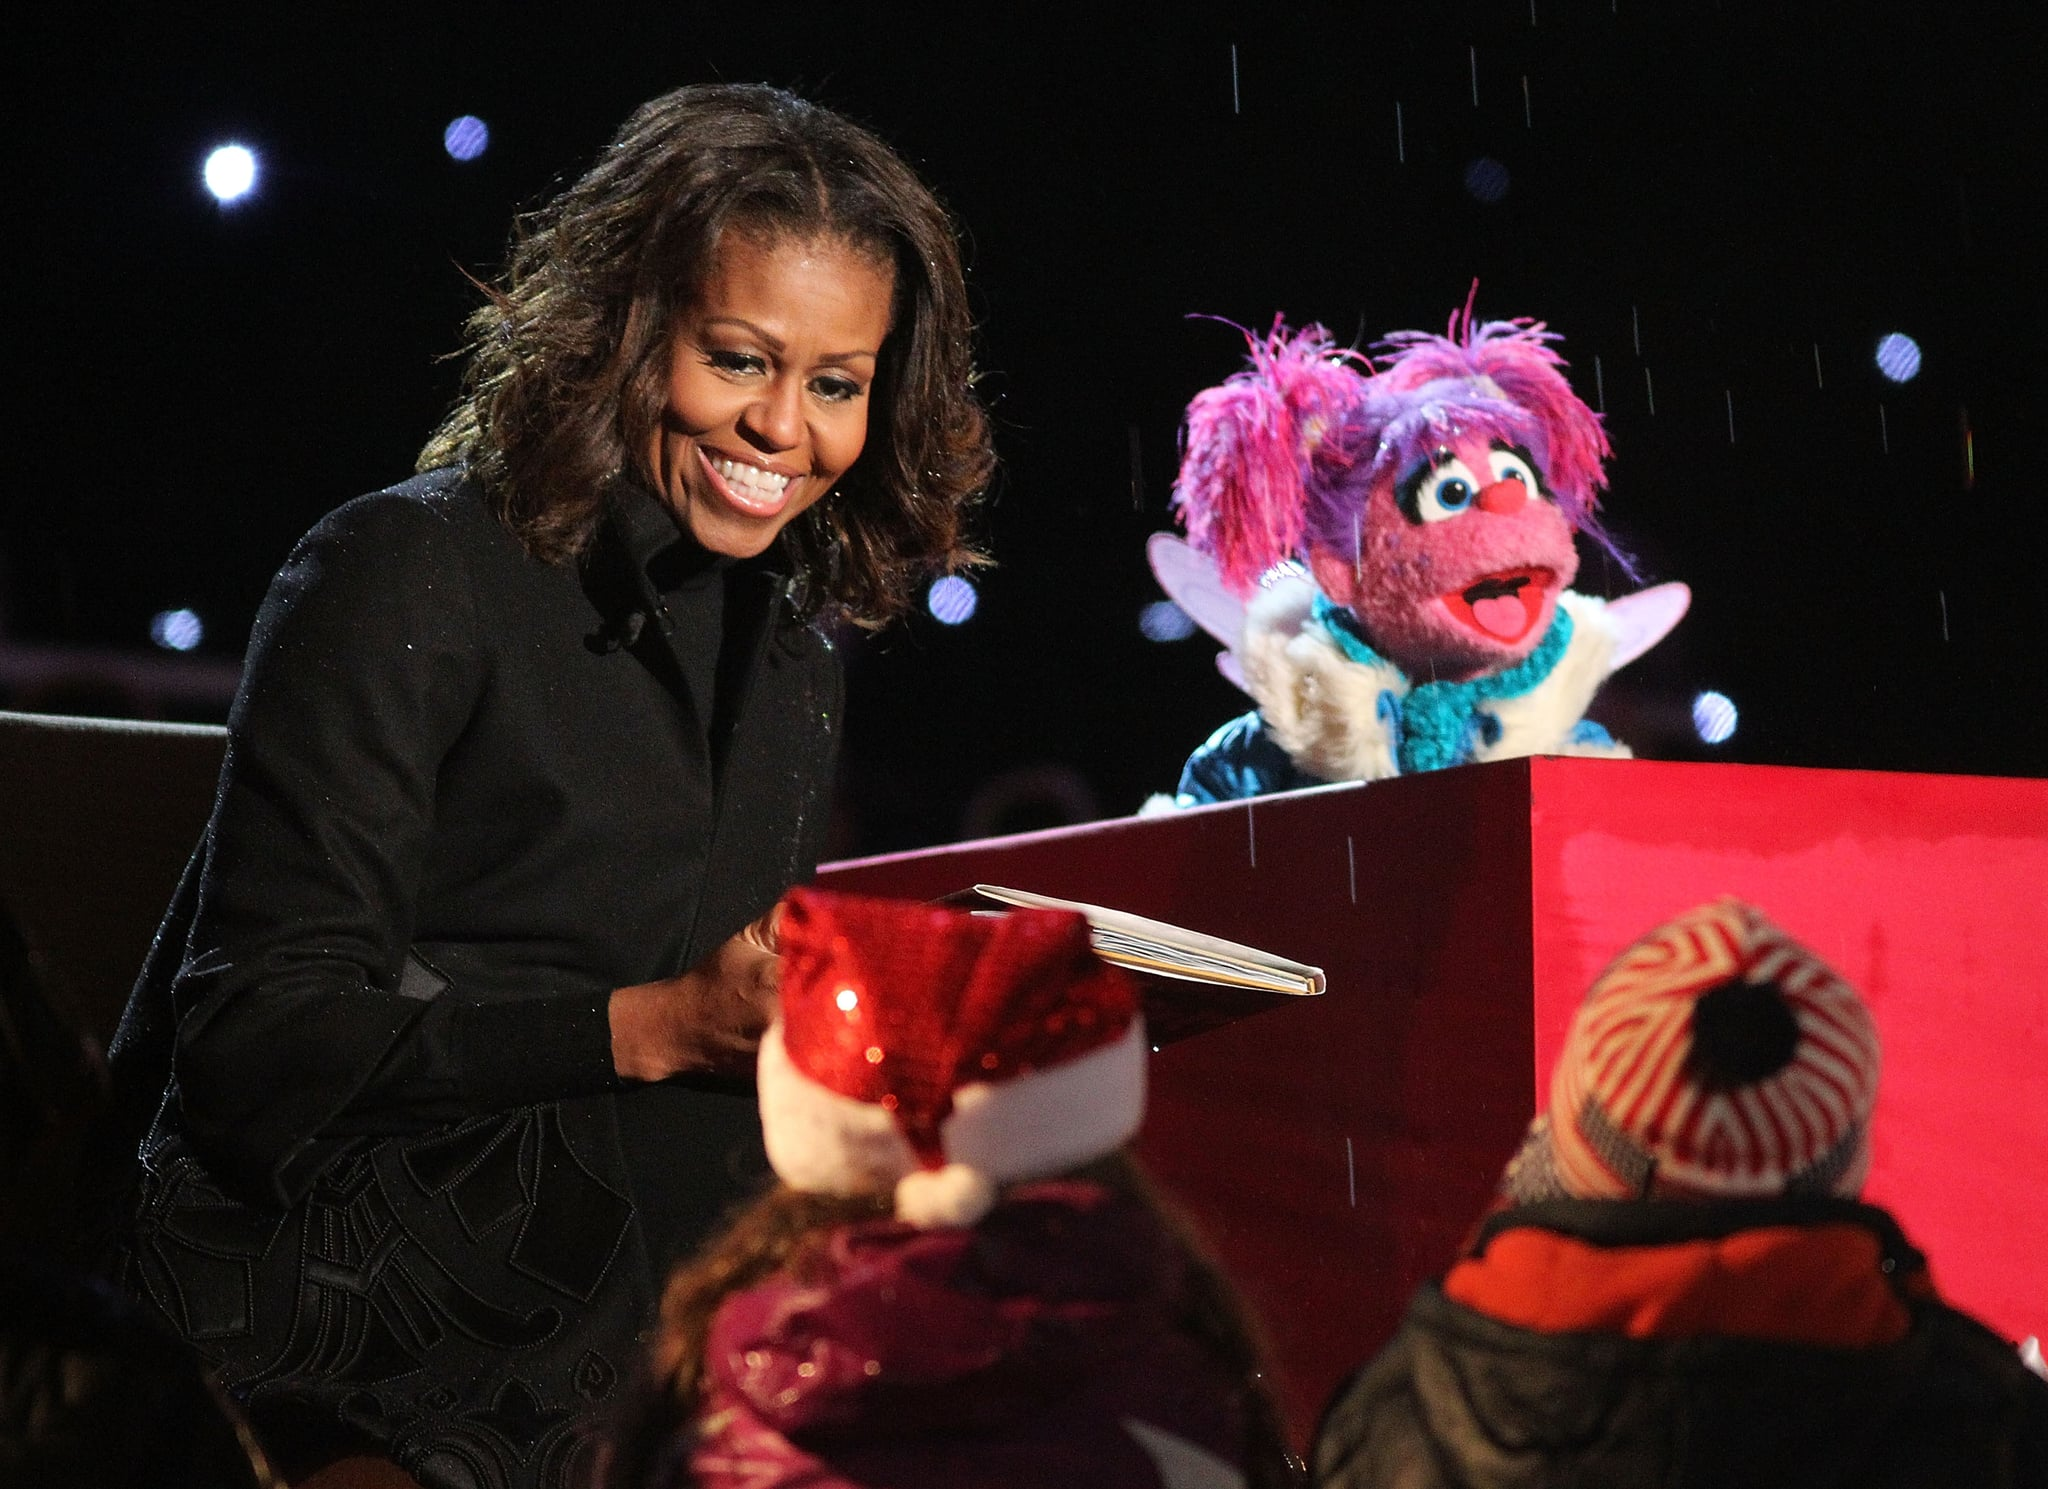 Or Michelle Reading Christmas Stories With a Muppet?